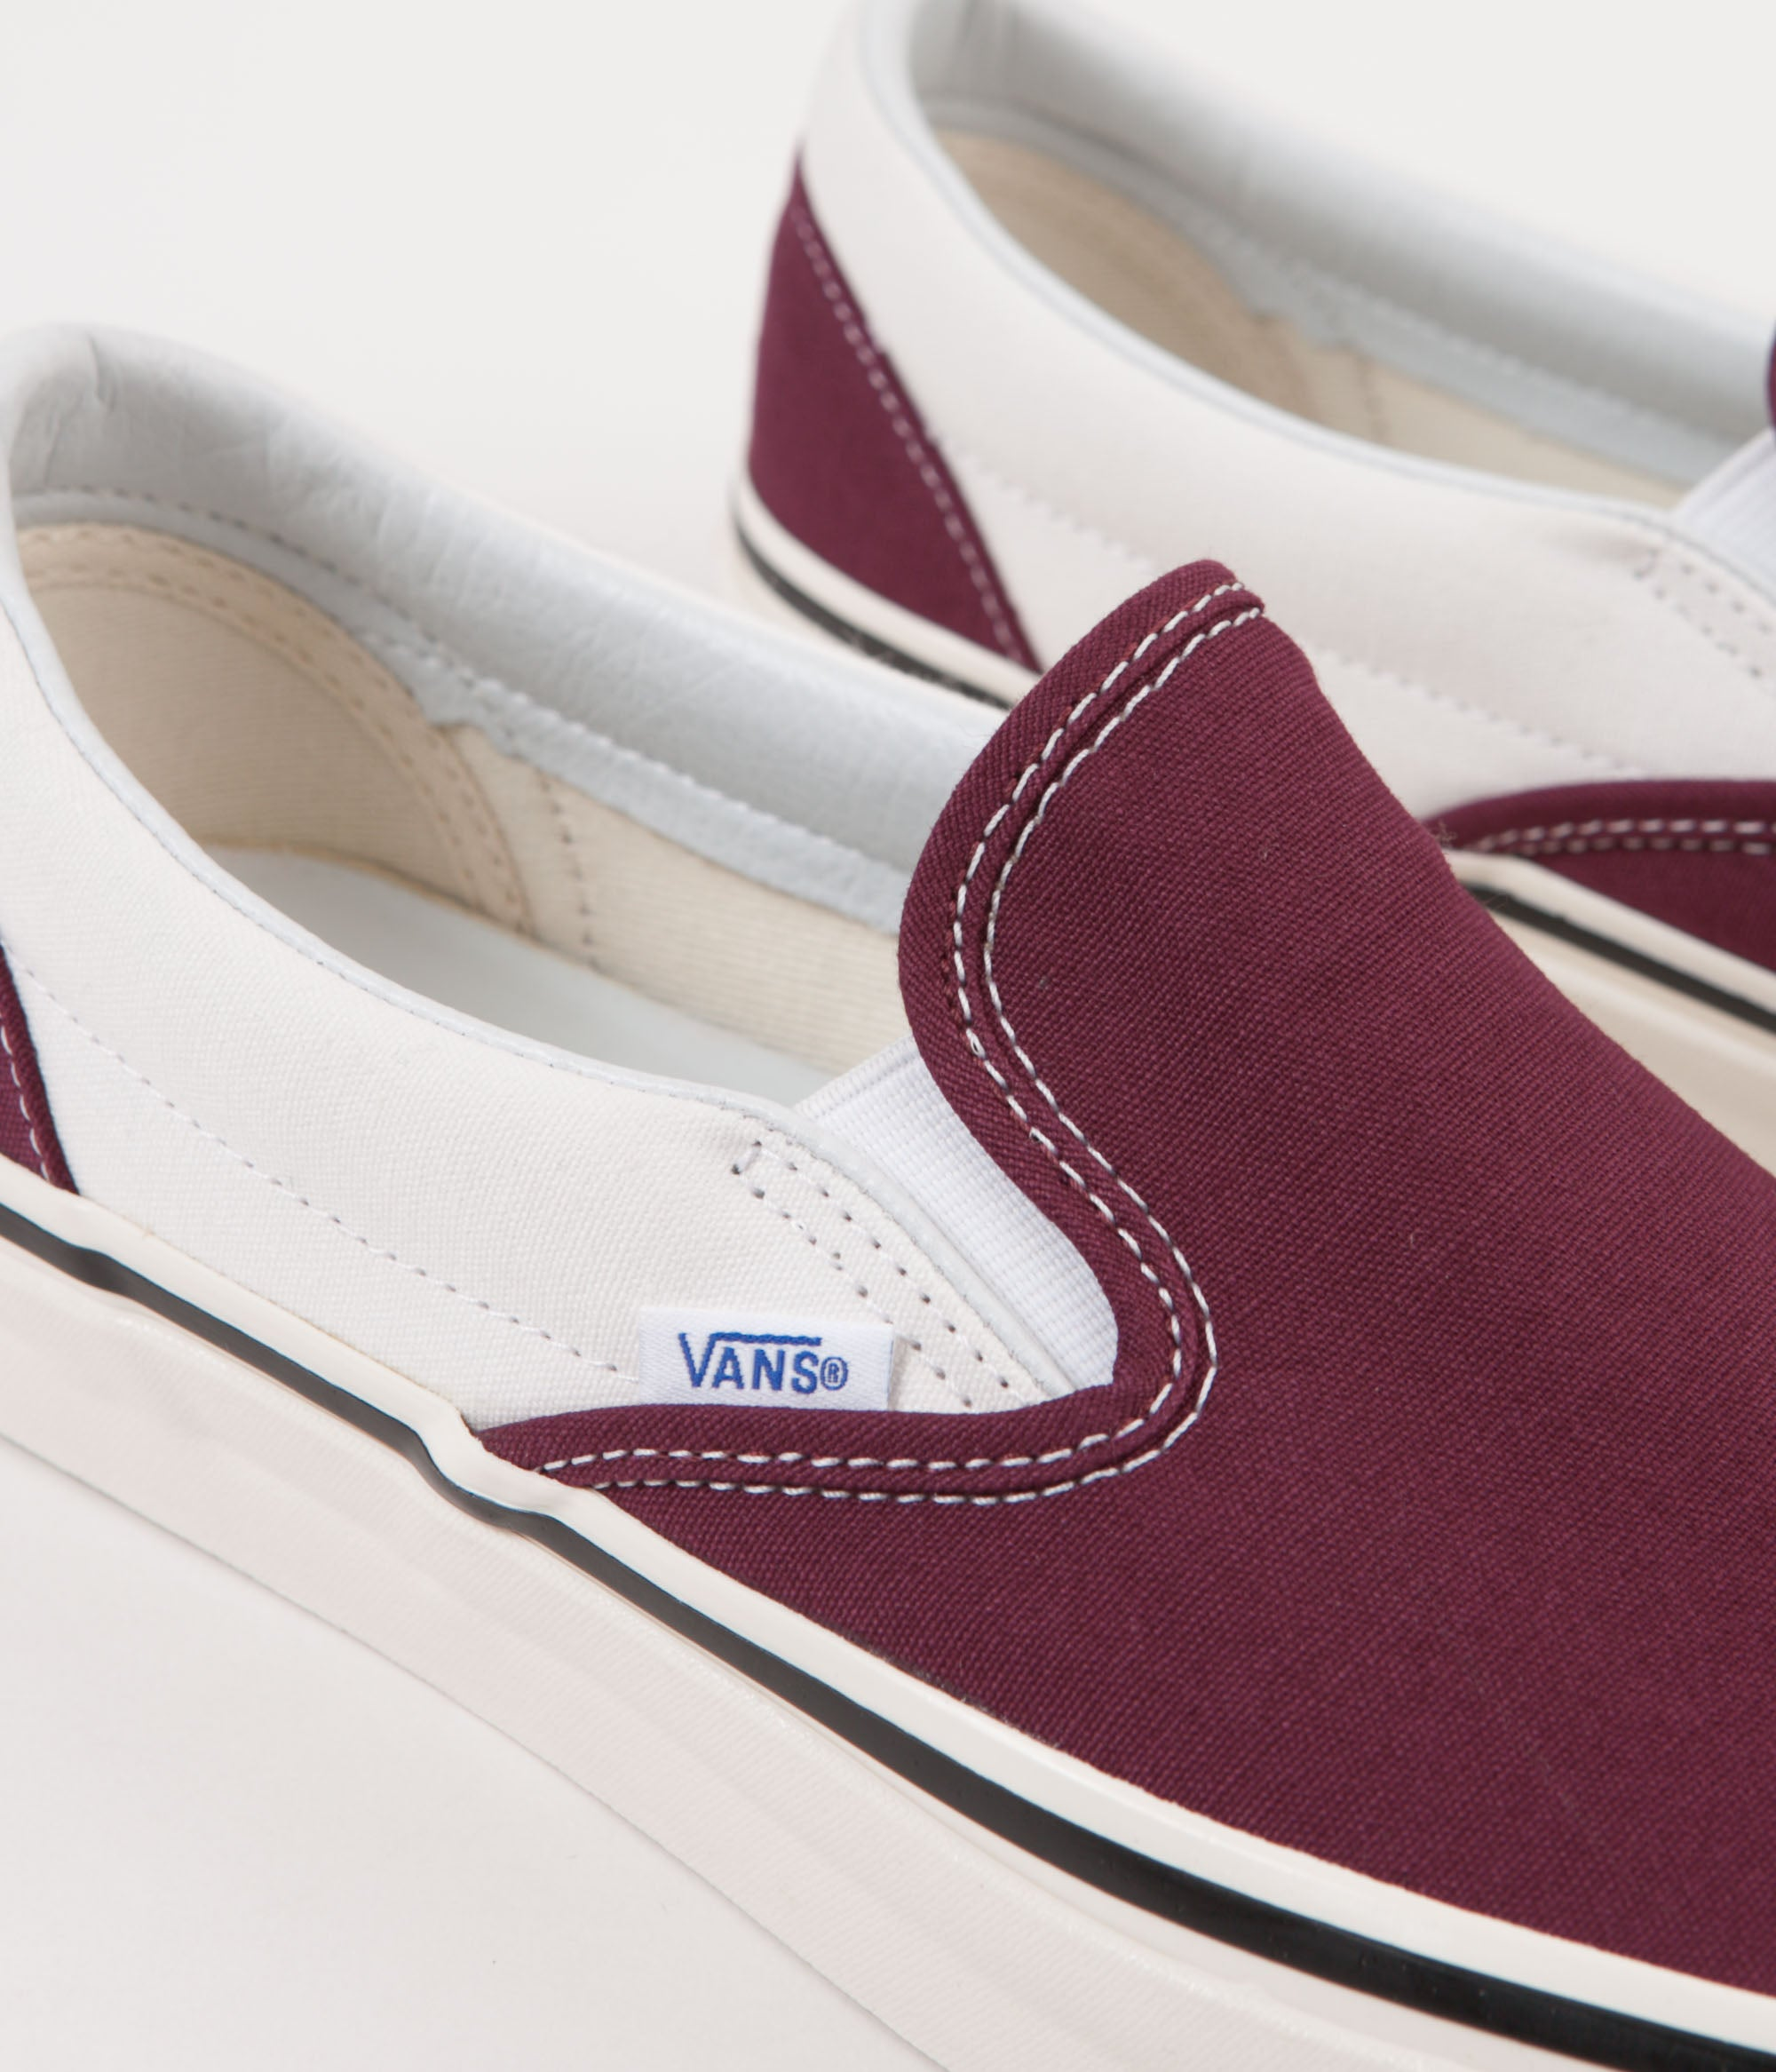 d72d9ea6bb0 ... Vans Classic Slip-On 98 DX Anaheim Factory Shoes - OG Burgundy   White  ...